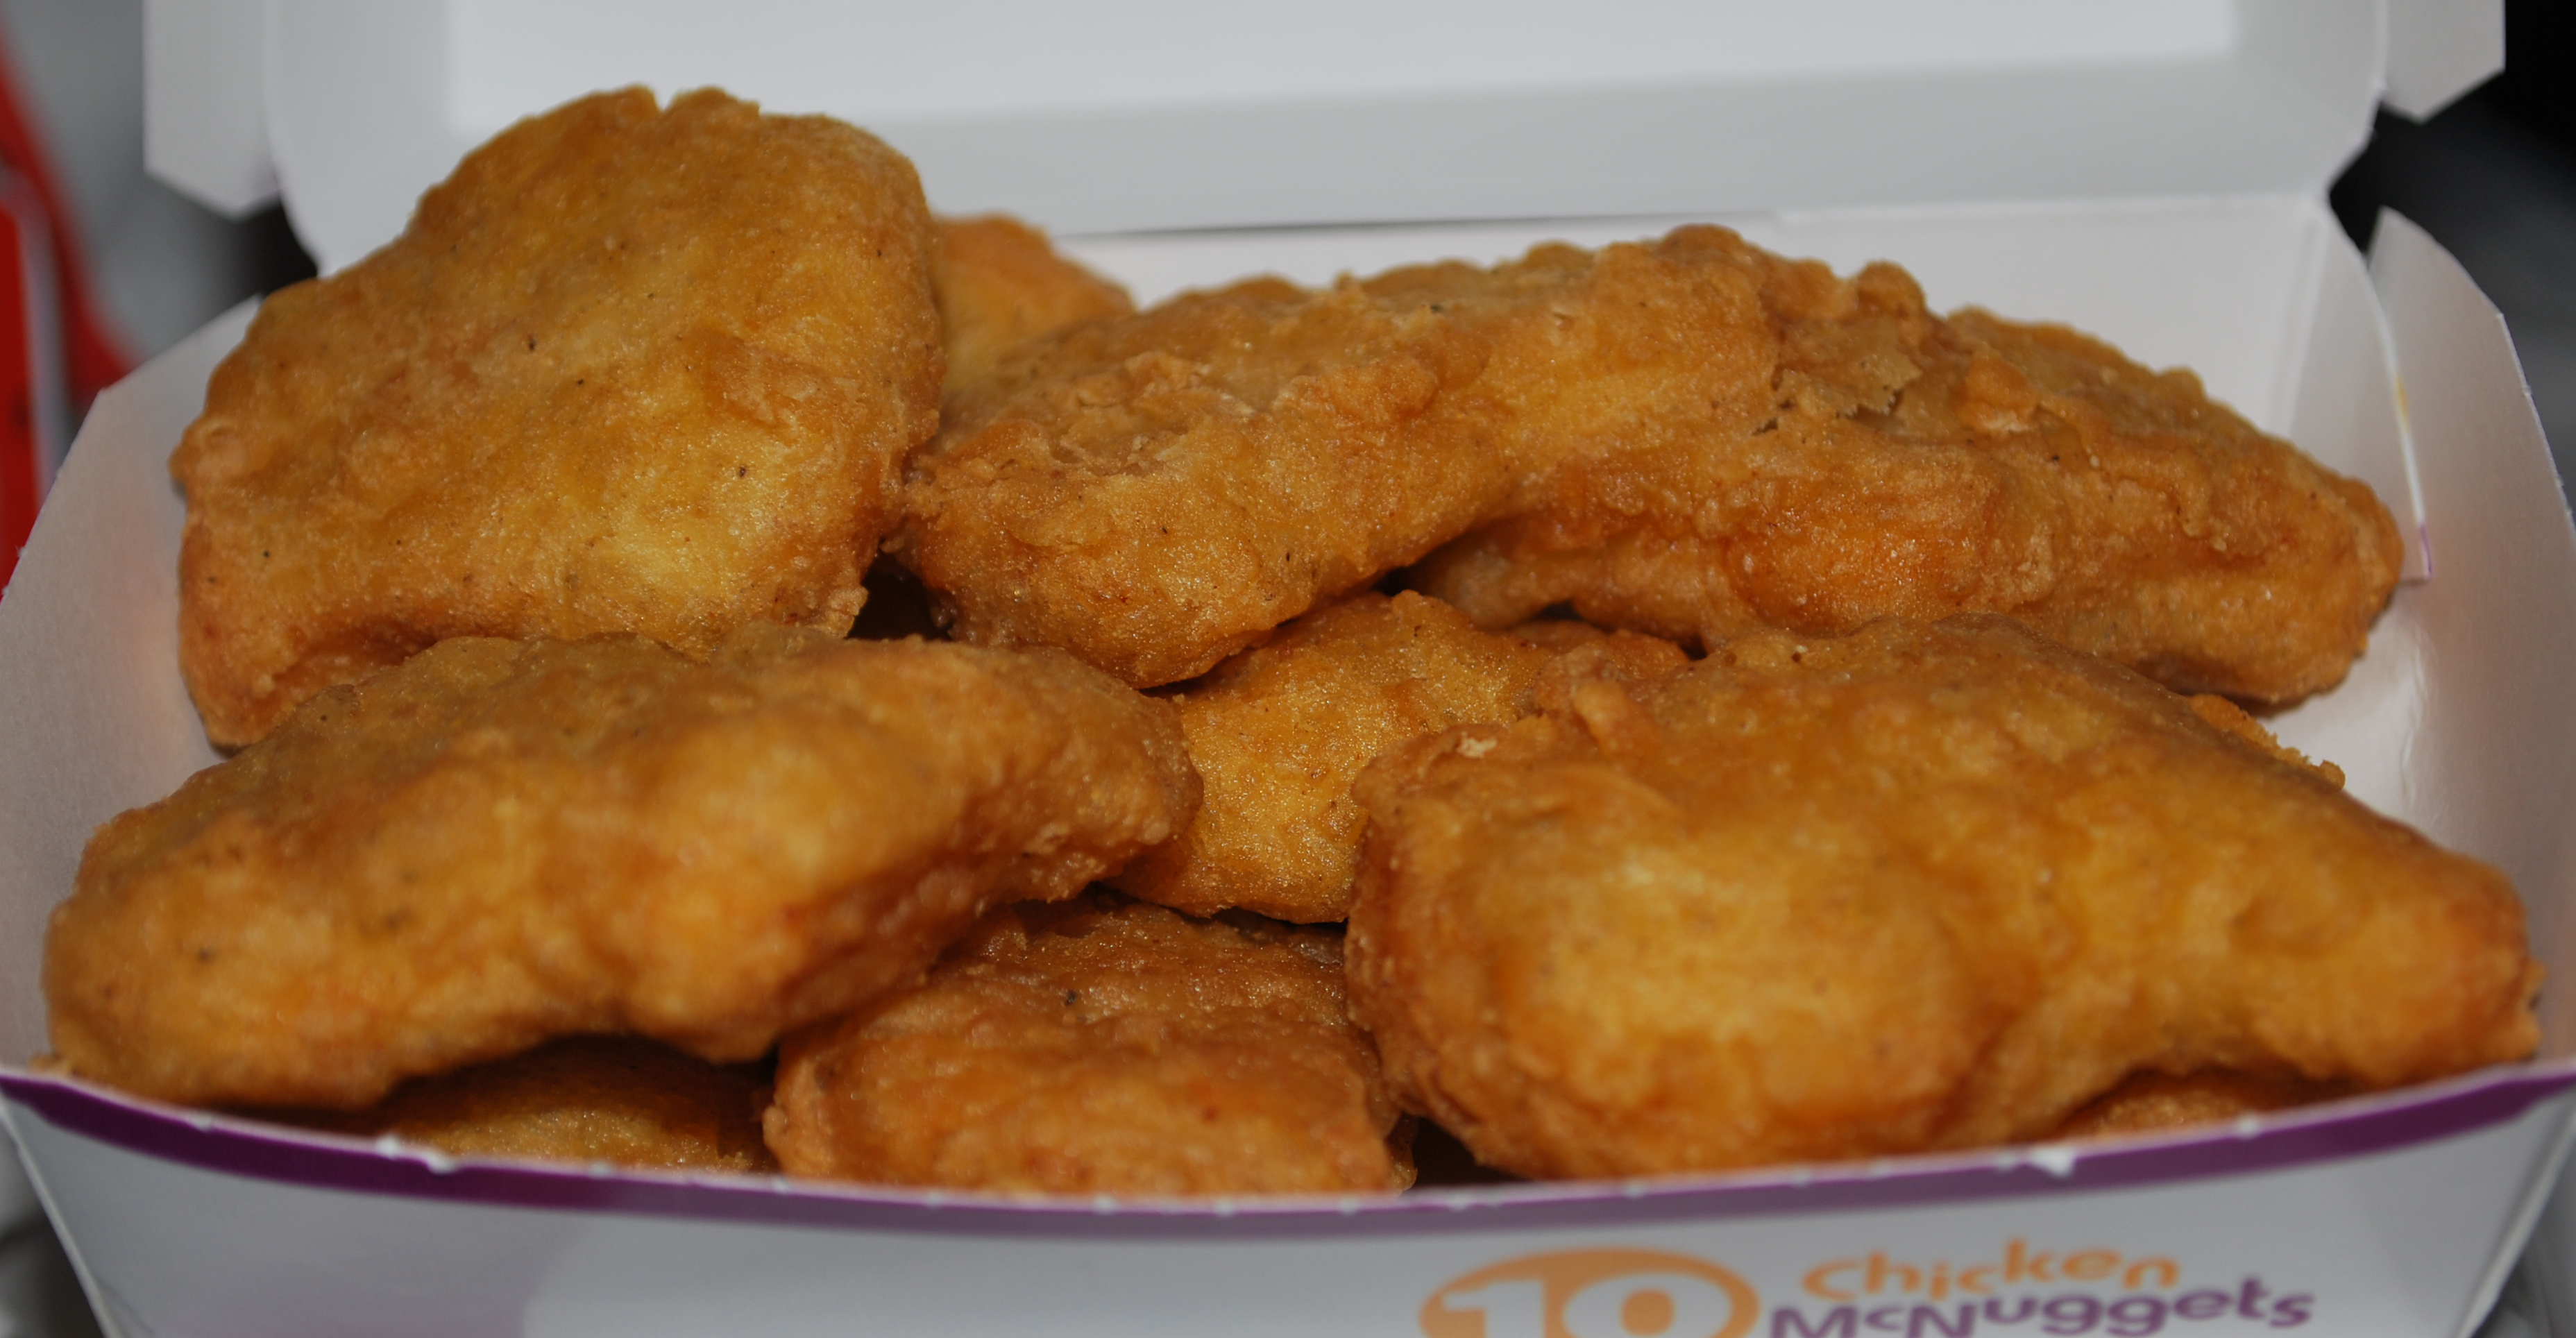 Chicken nuggets - 10pc